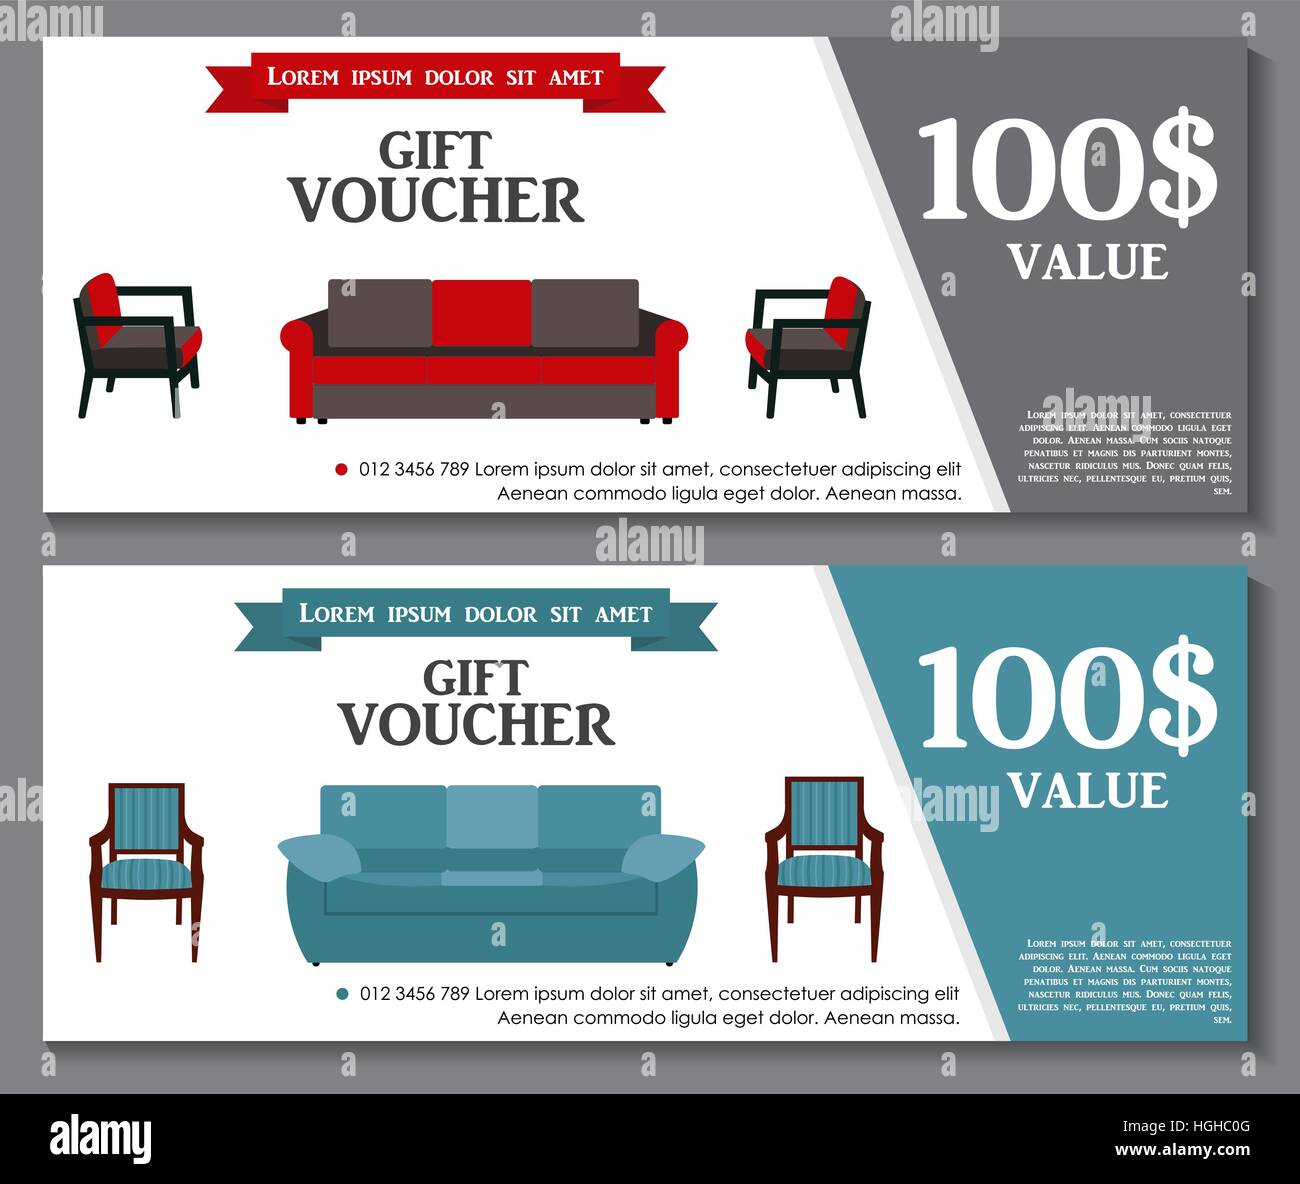 Attractive Gift Voucher Template With Variation Of Furniture For Apartments